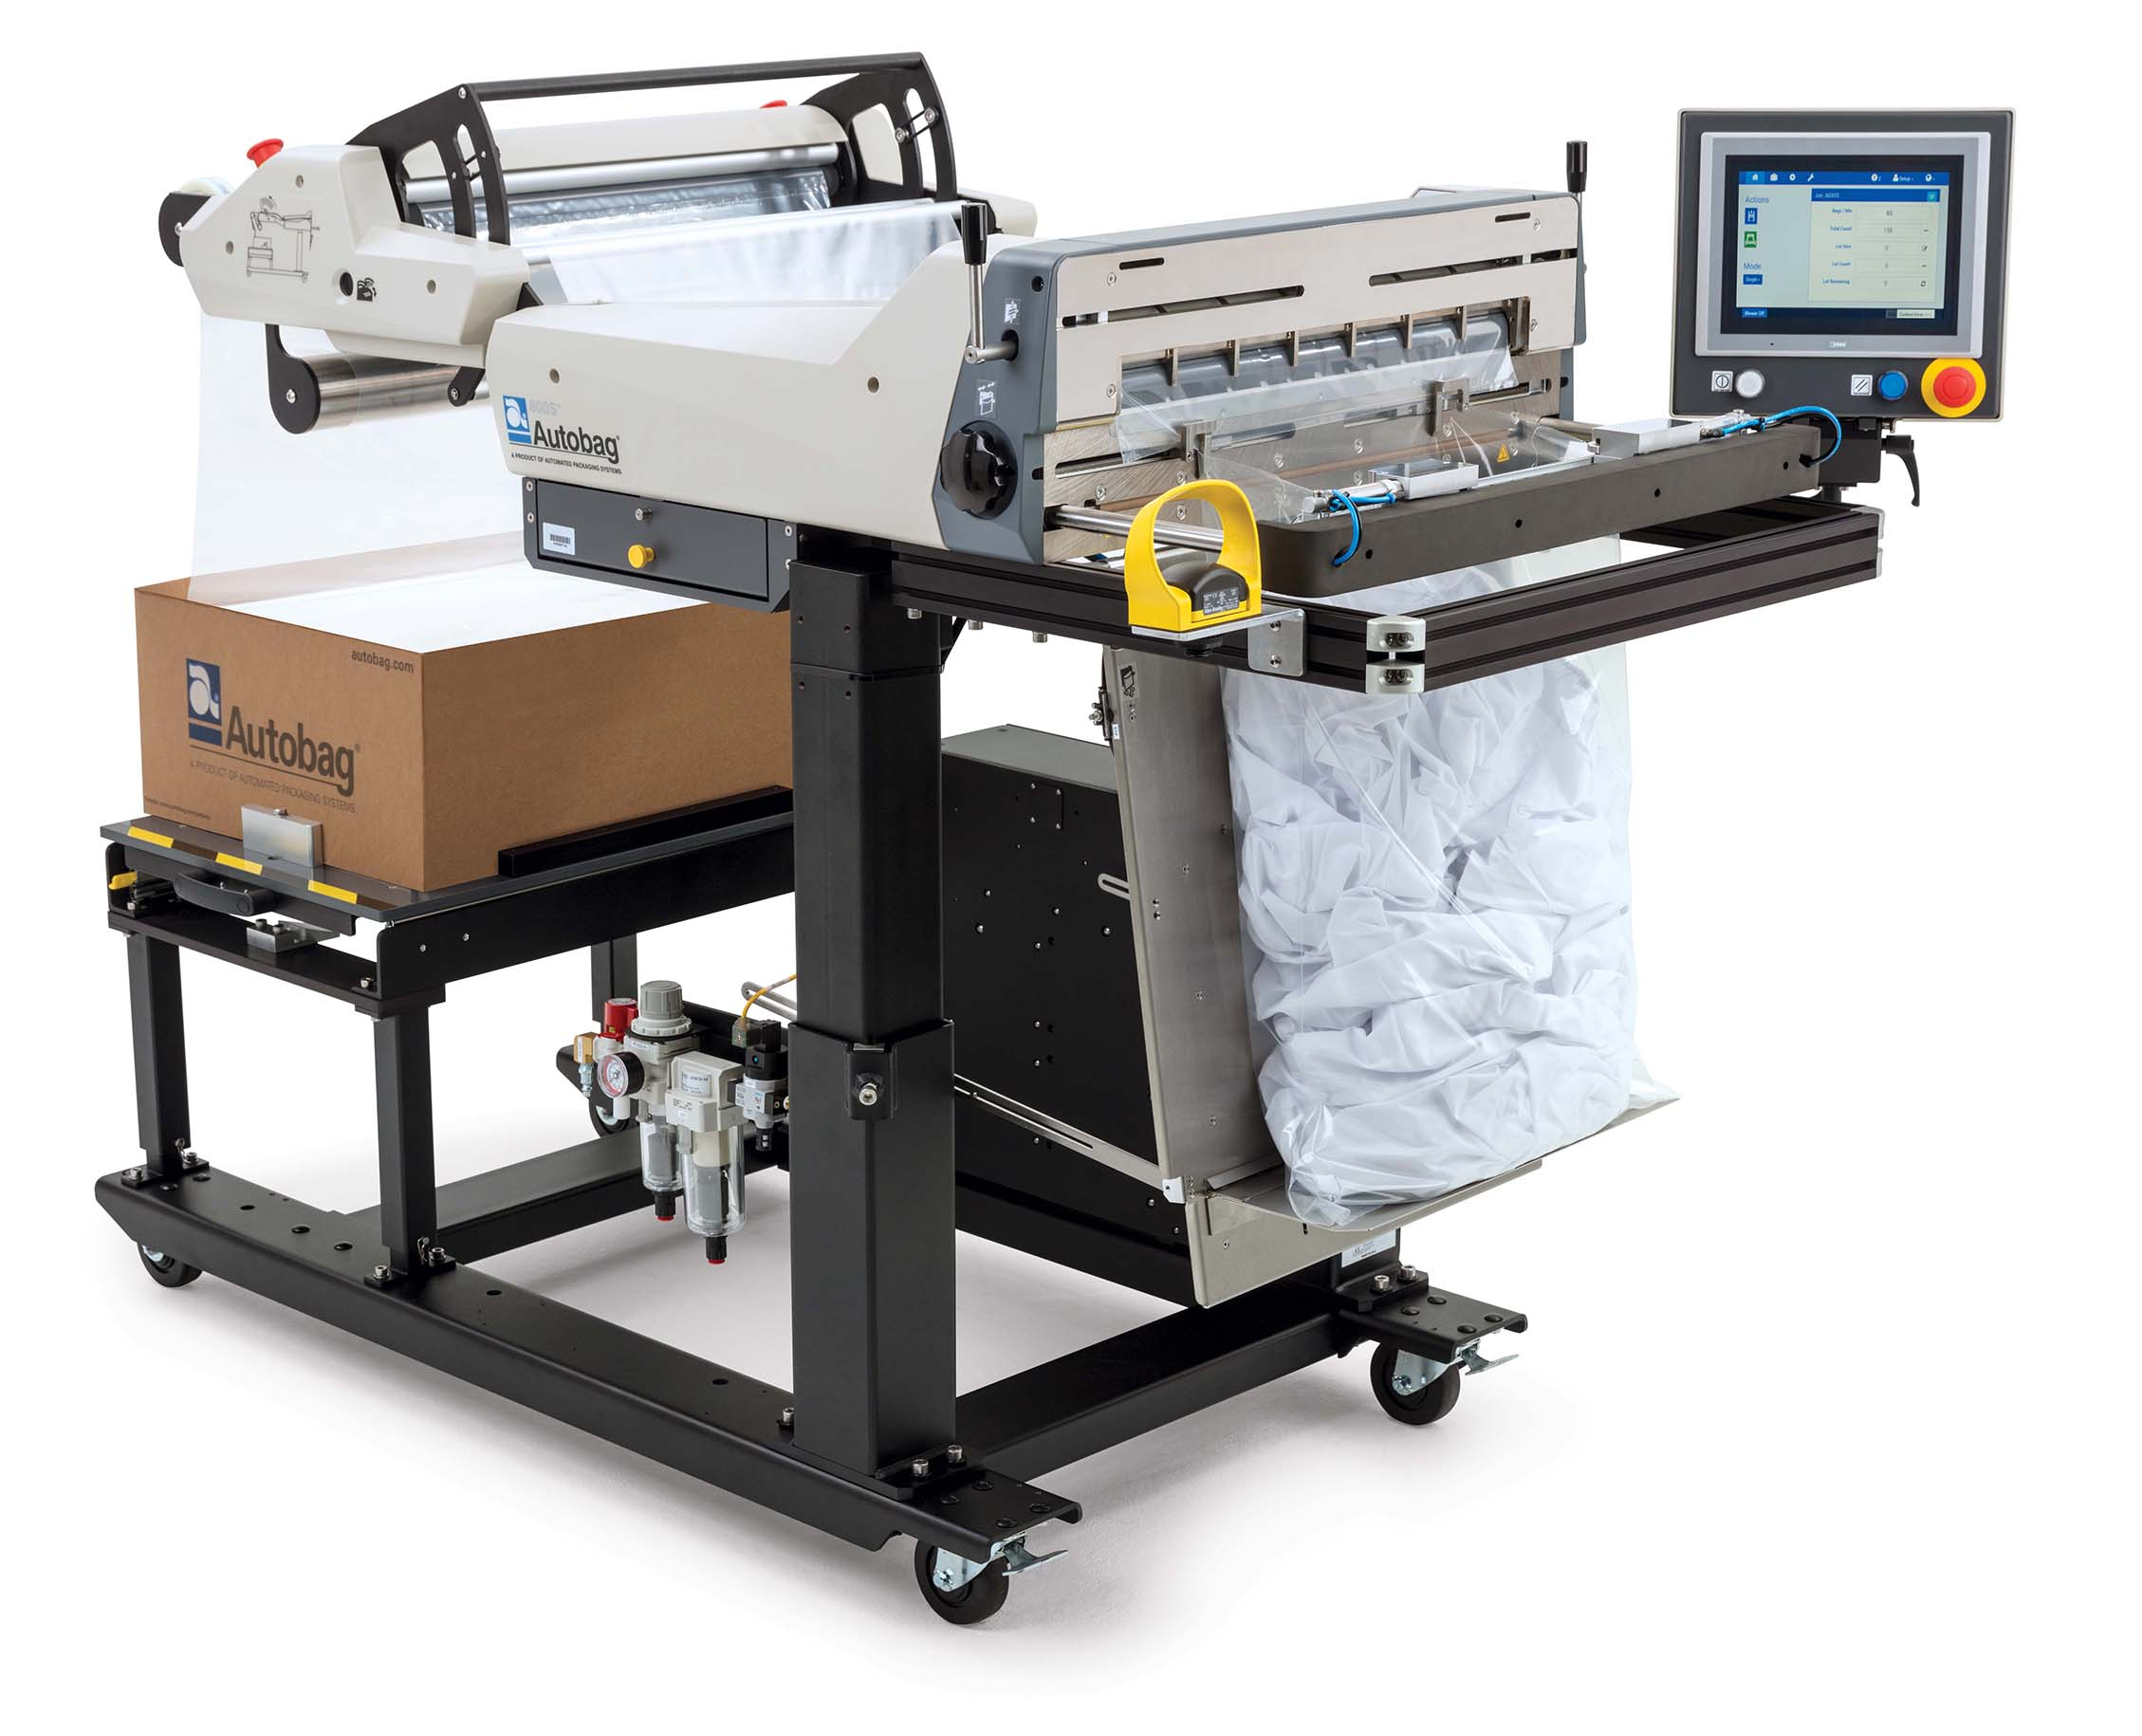 Autobag 800S automatic bag sealer hospital sheets application